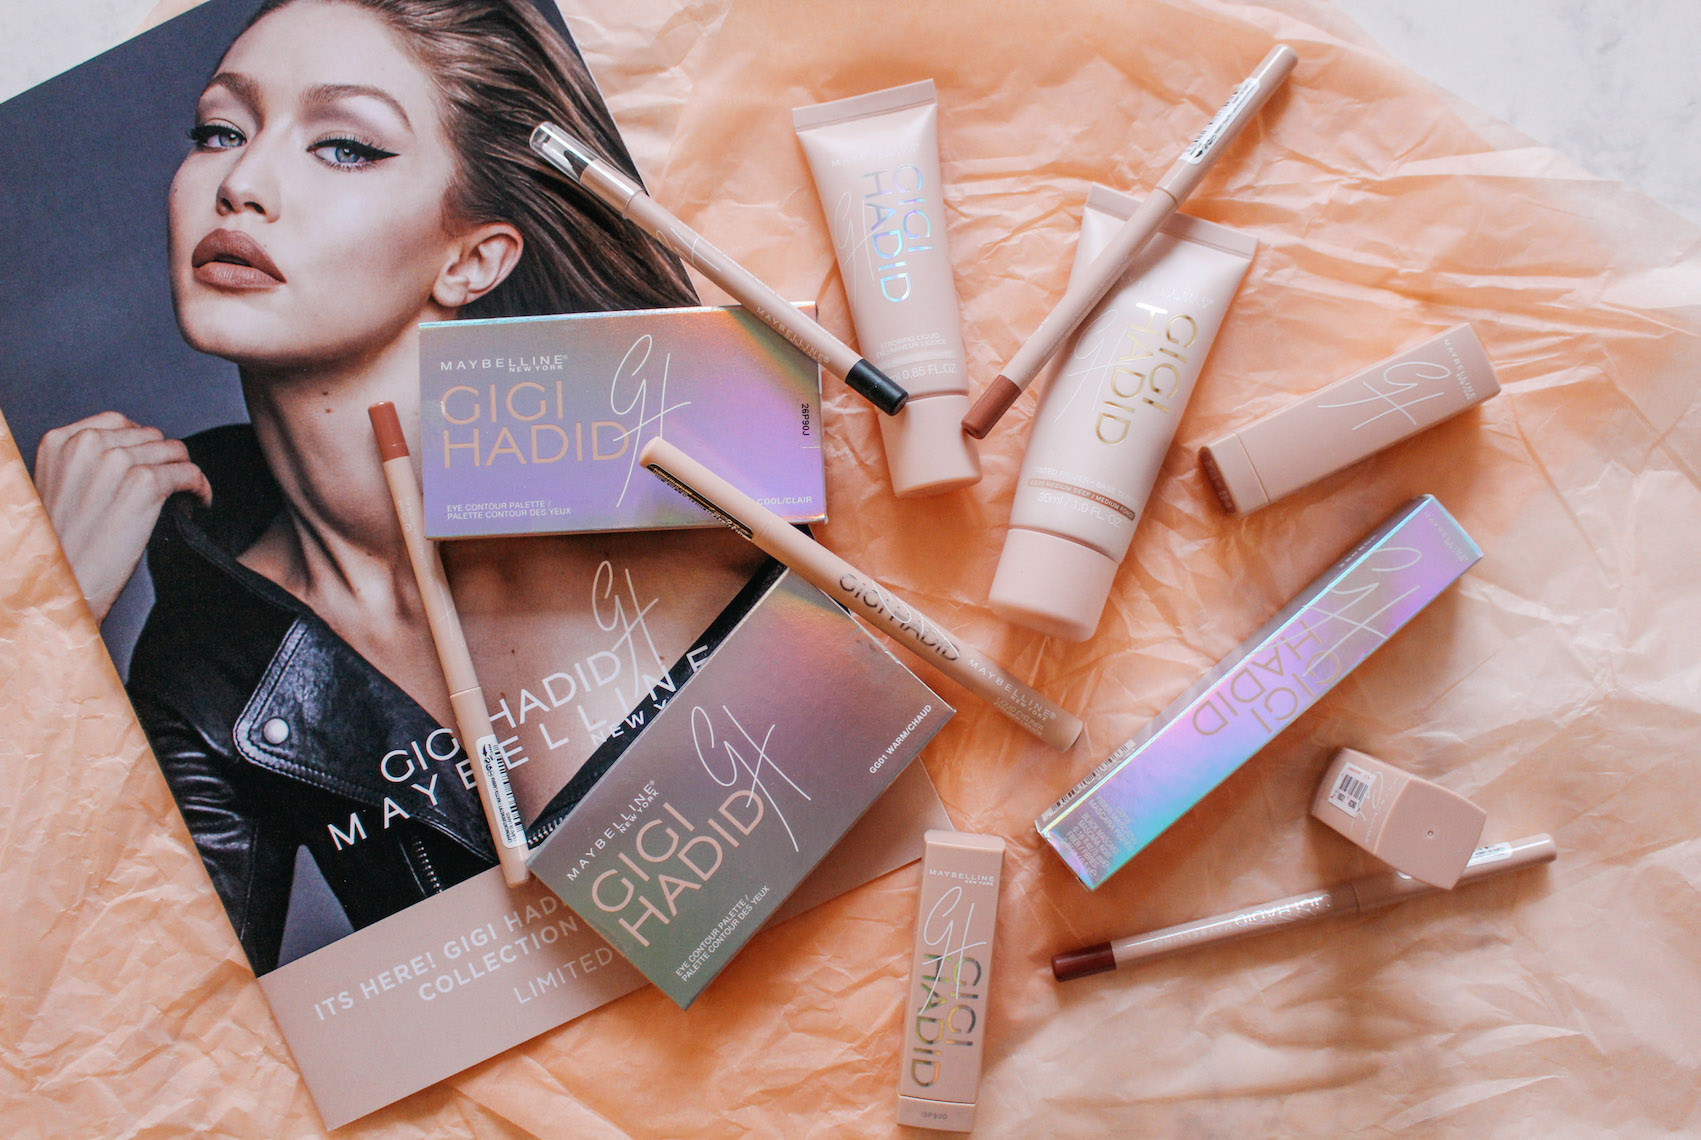 GIGI HADID X MAYBELLINE – COAST TO COAST COLLECTION